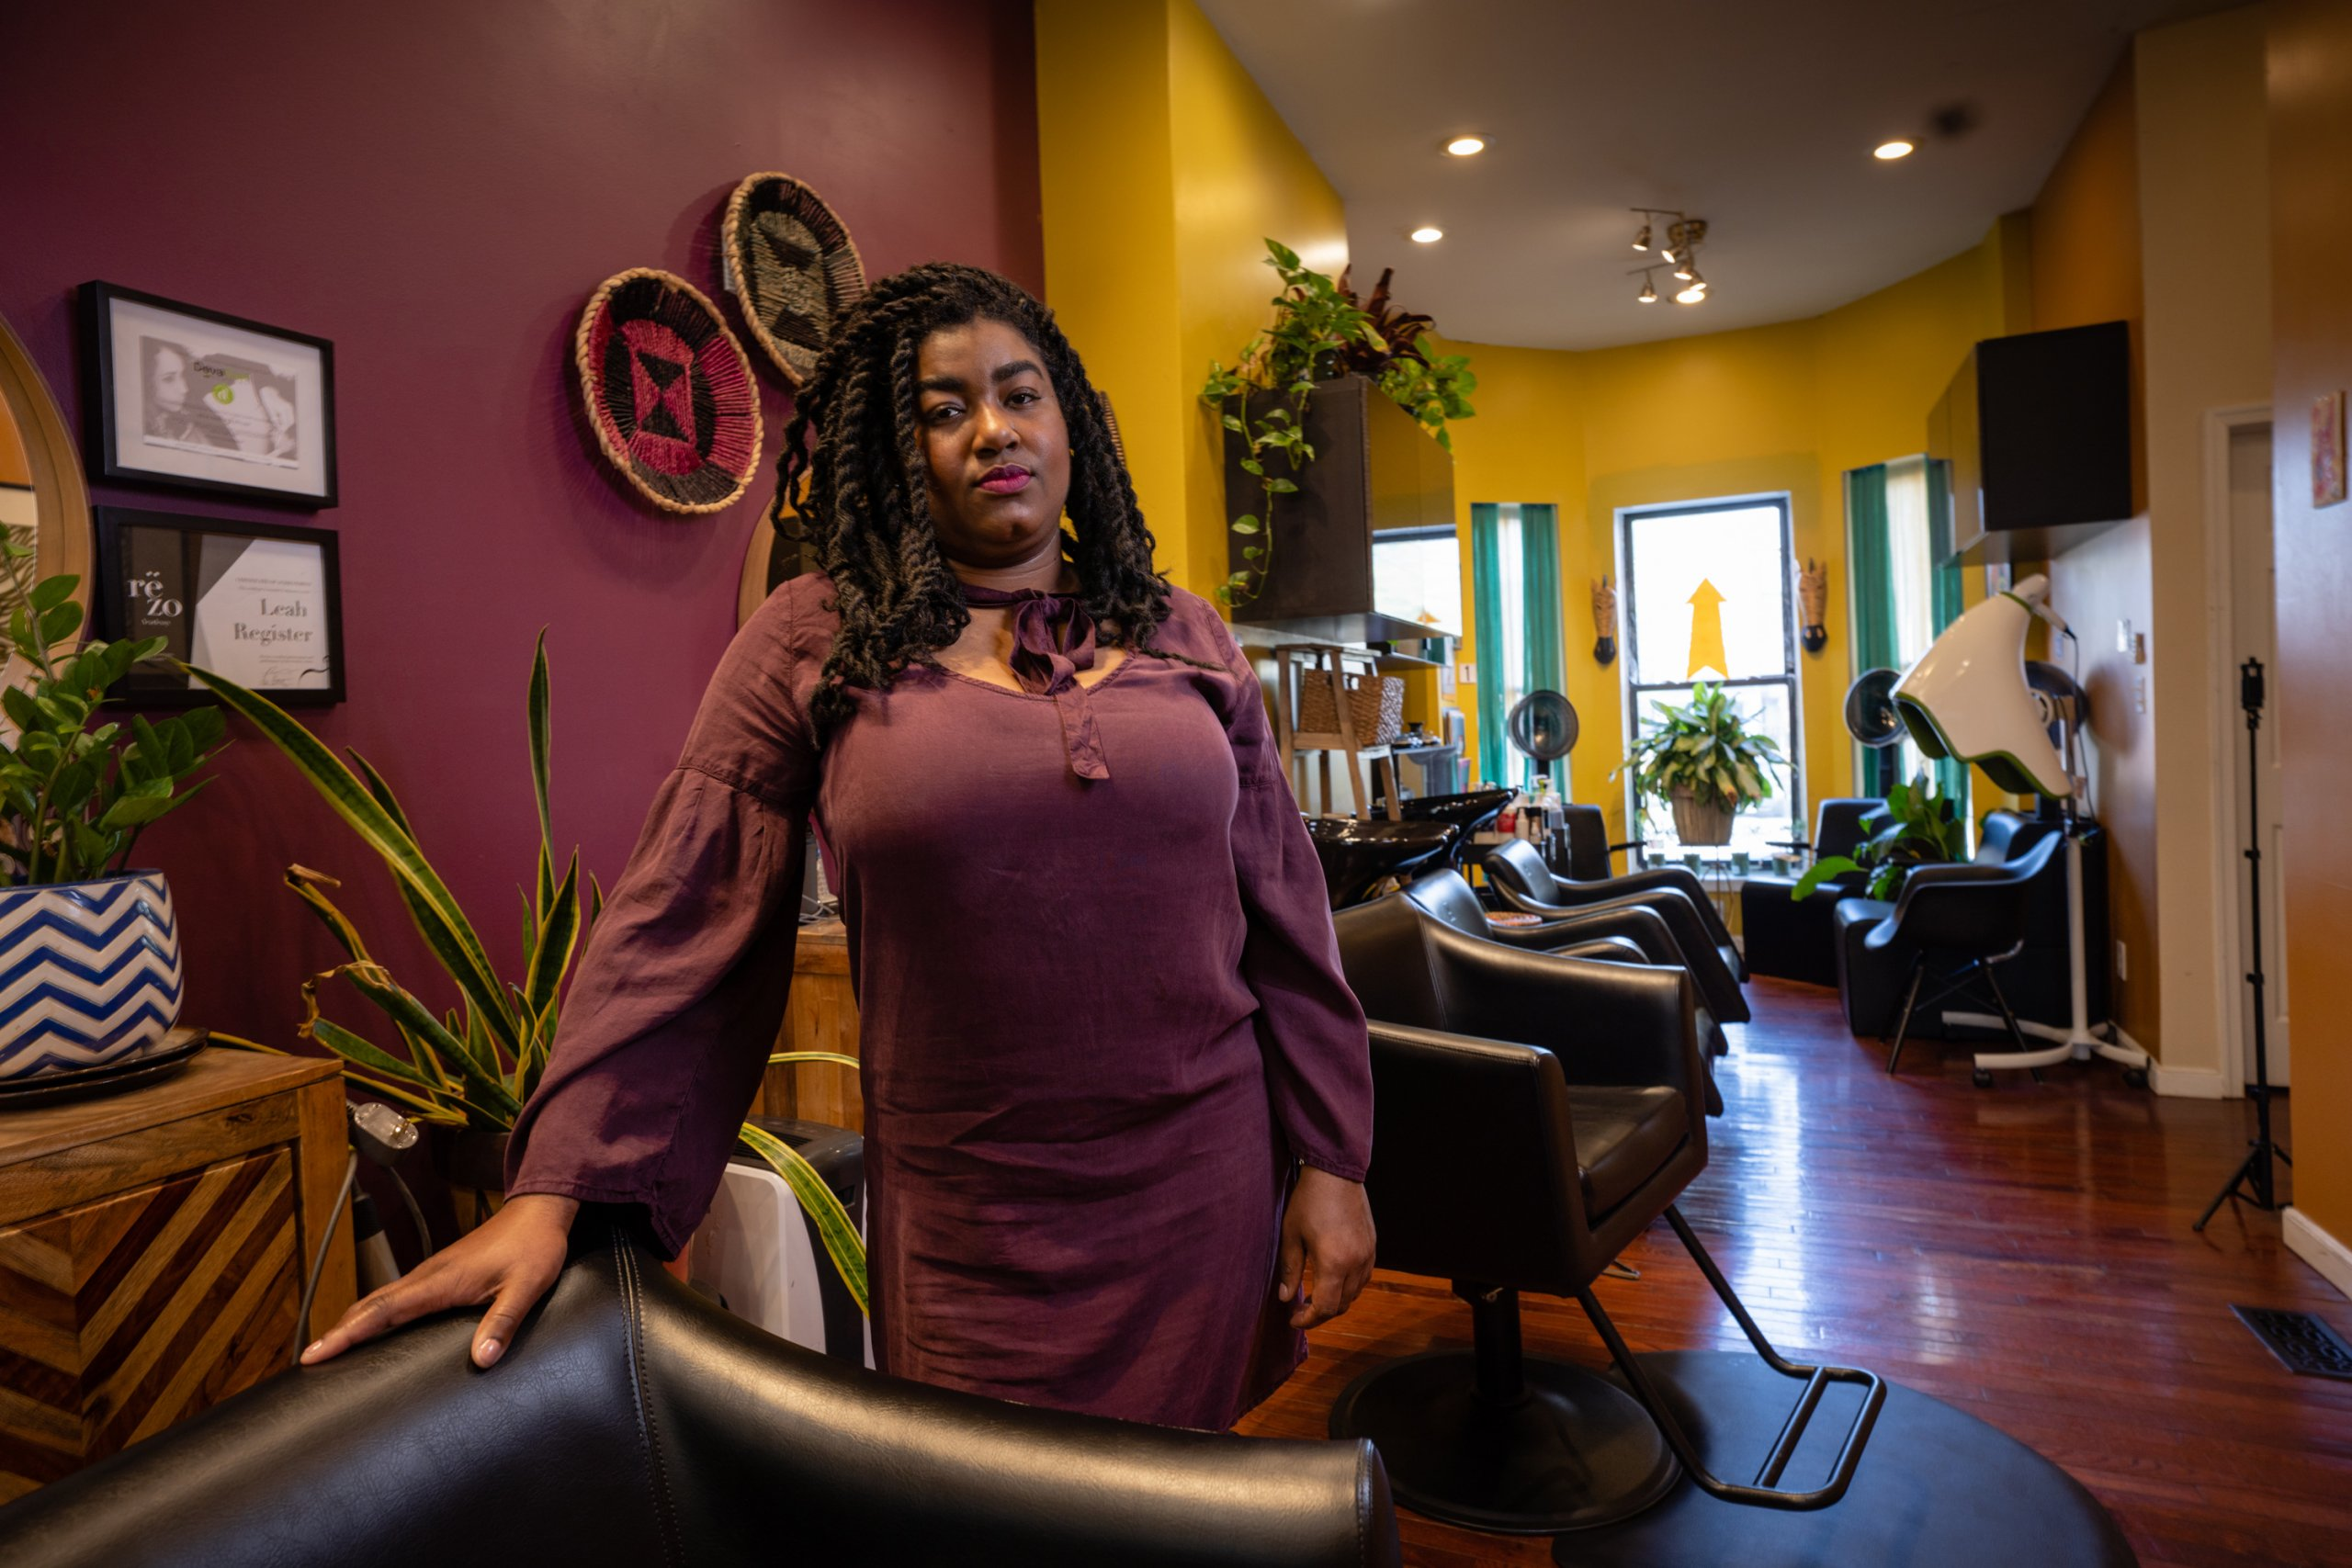 News: Black-Owned Businesses Could Face Hurdles in Federal Aid Program (The New York Times, April 10)